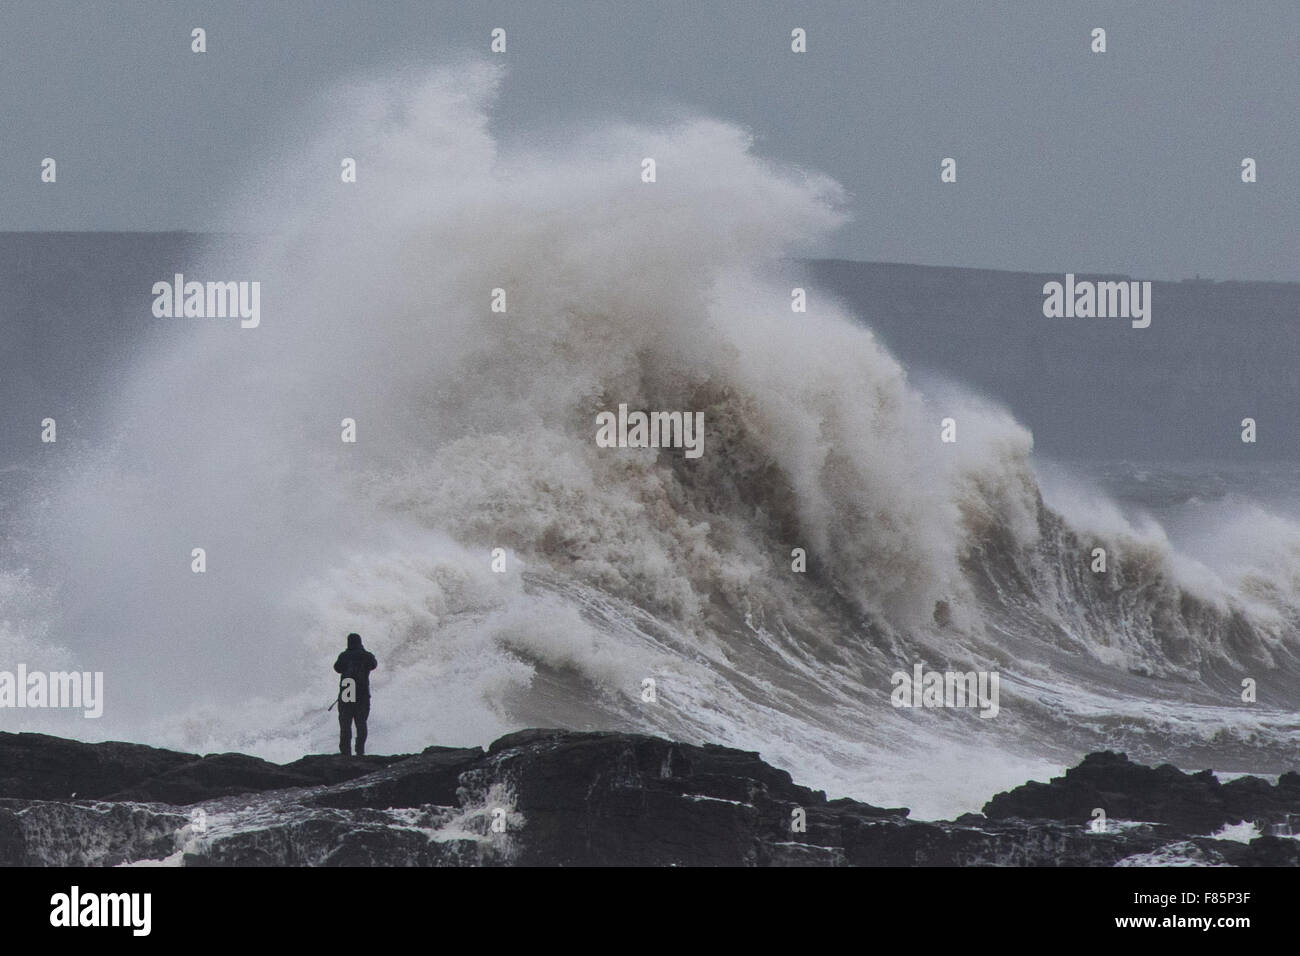 Porthcawl, Wales, UK. 5th December 2015. A photographer stands dangerously close to the sea in Porthcawl, as huge - Stock Image